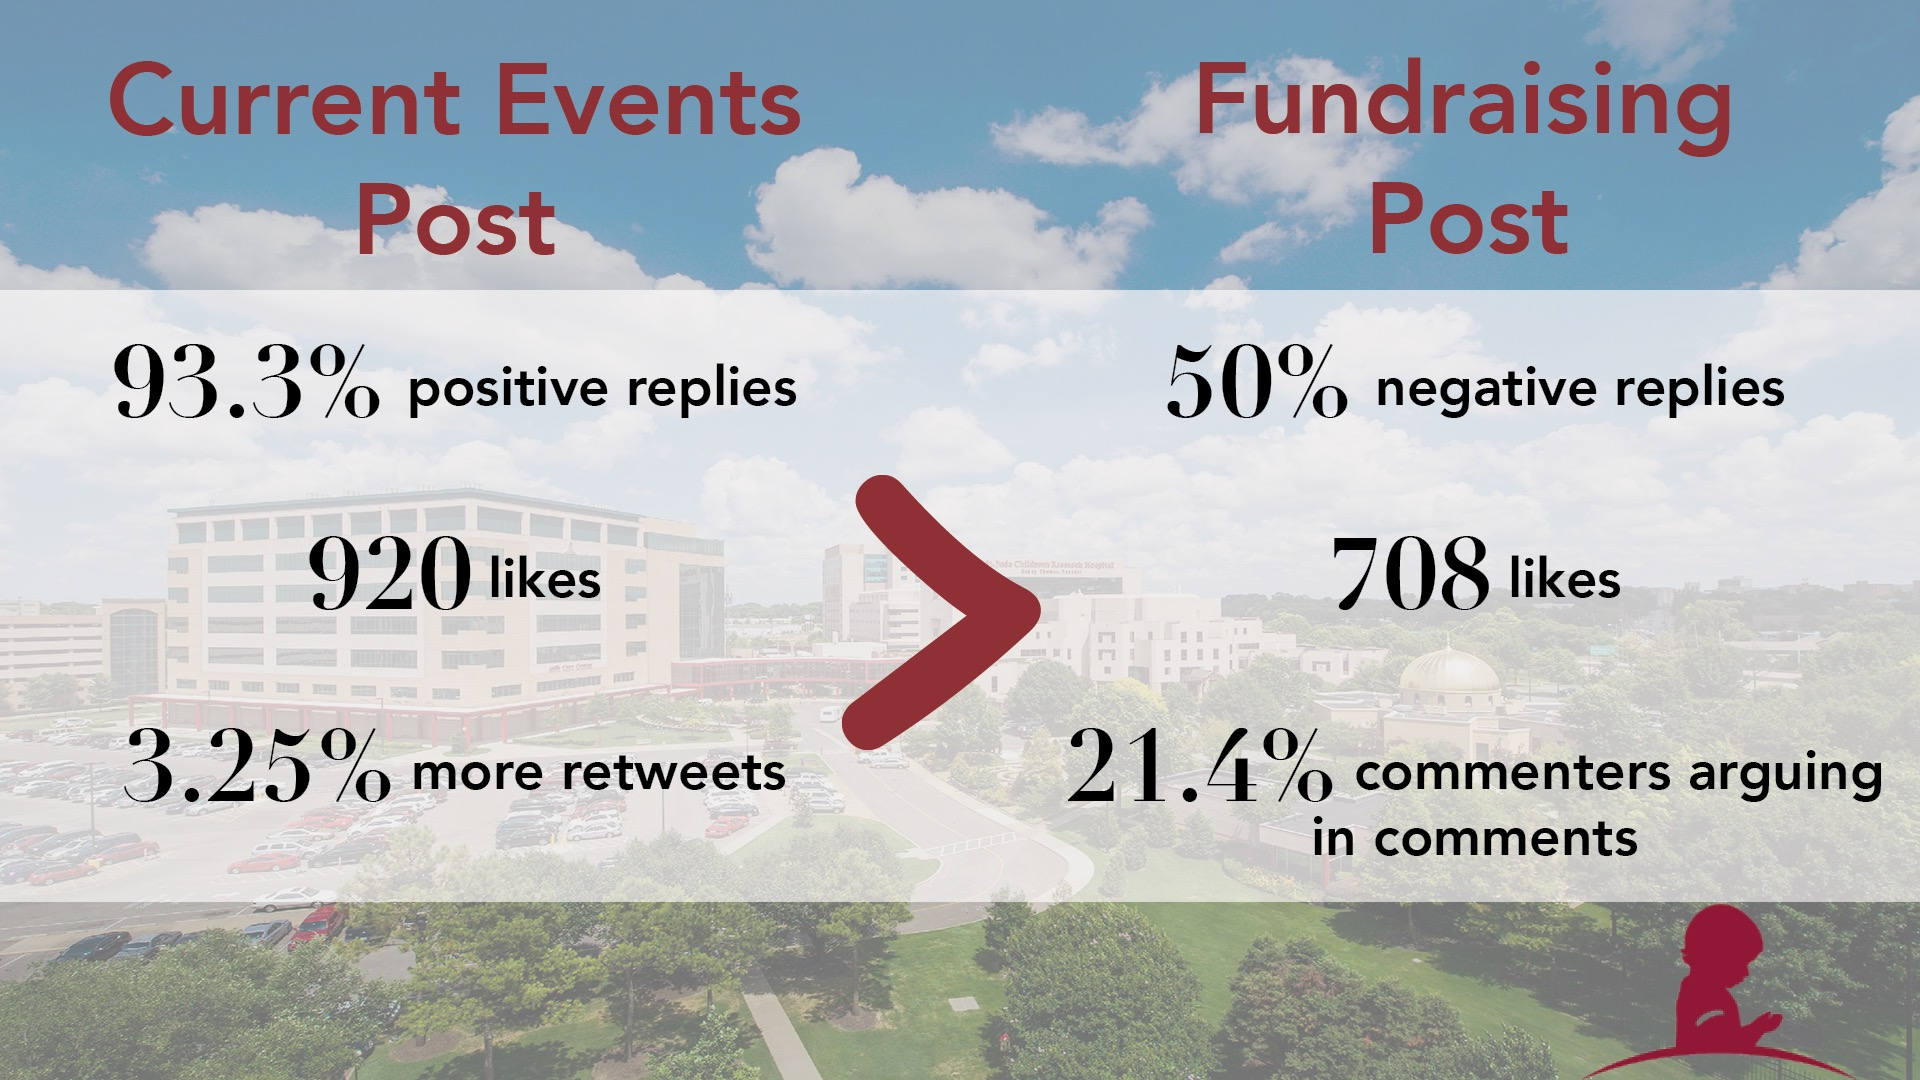 St. Jude's – Fundraising Posts: Most need, least engagement